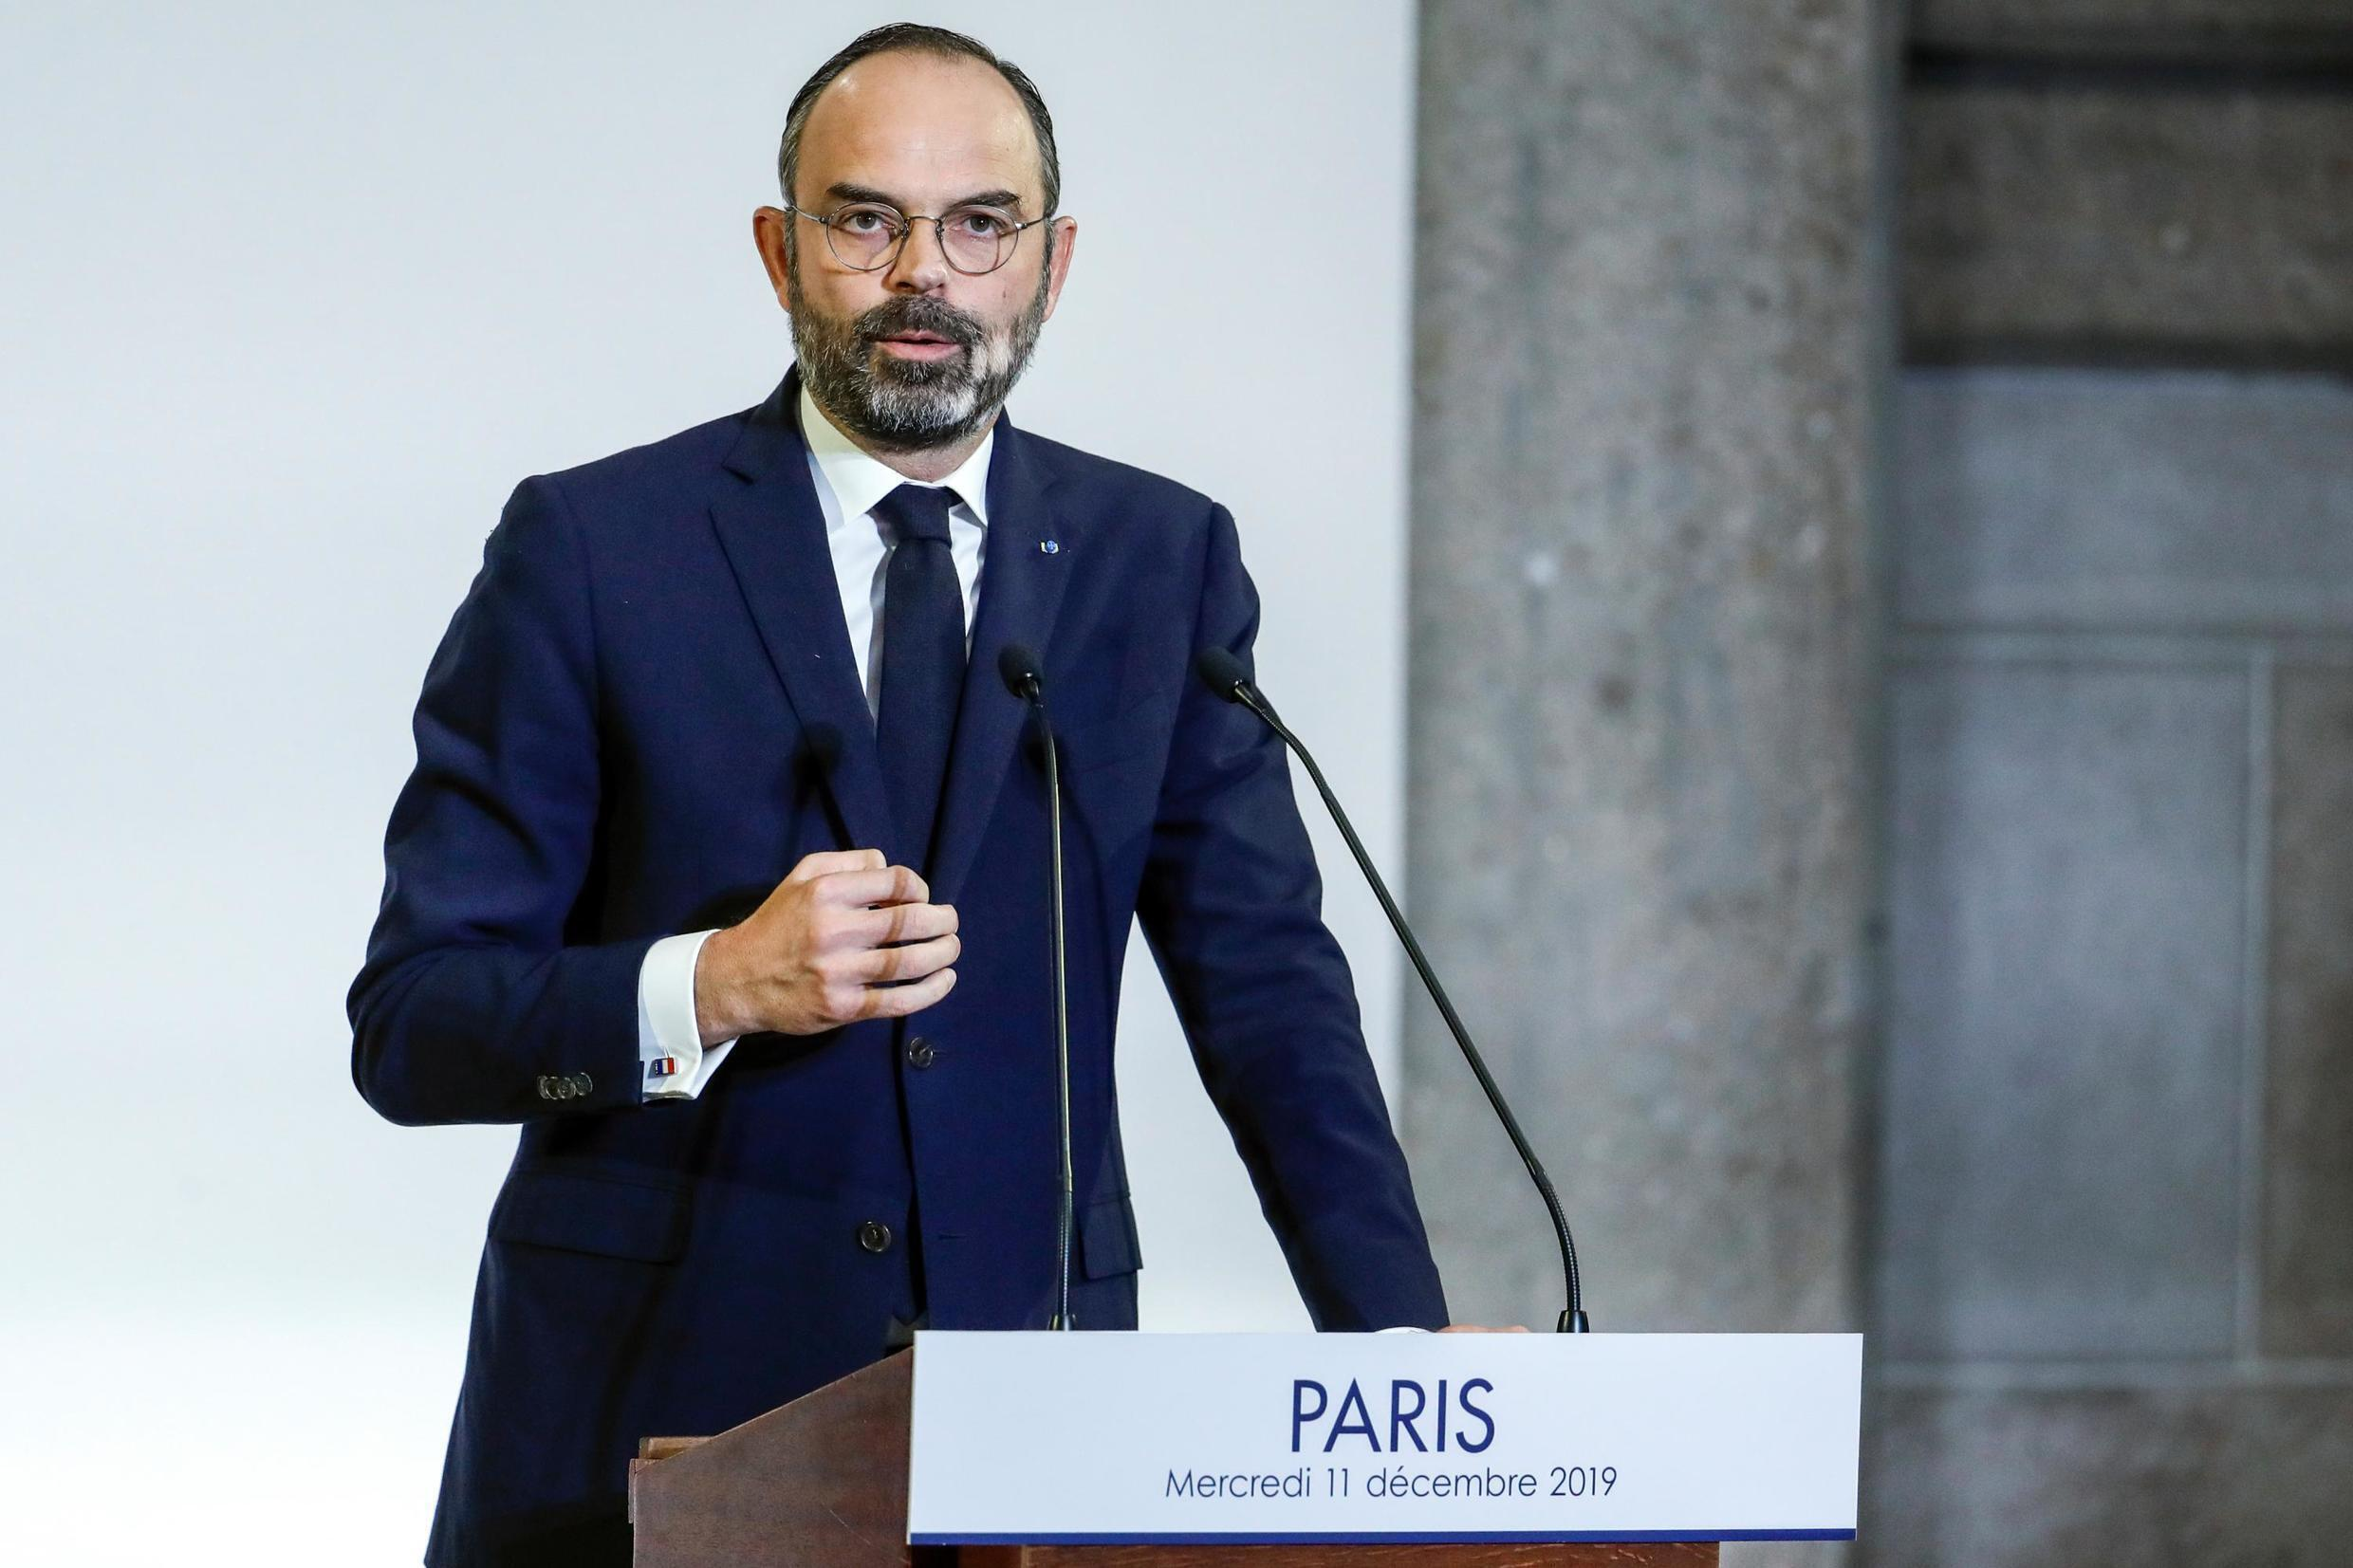 French Prime Minister Edouard Philippe unveils the details of a pensions reform plan before the CESE (Economic, Social and Environmental Council) in Paris, France December 11, 2019.